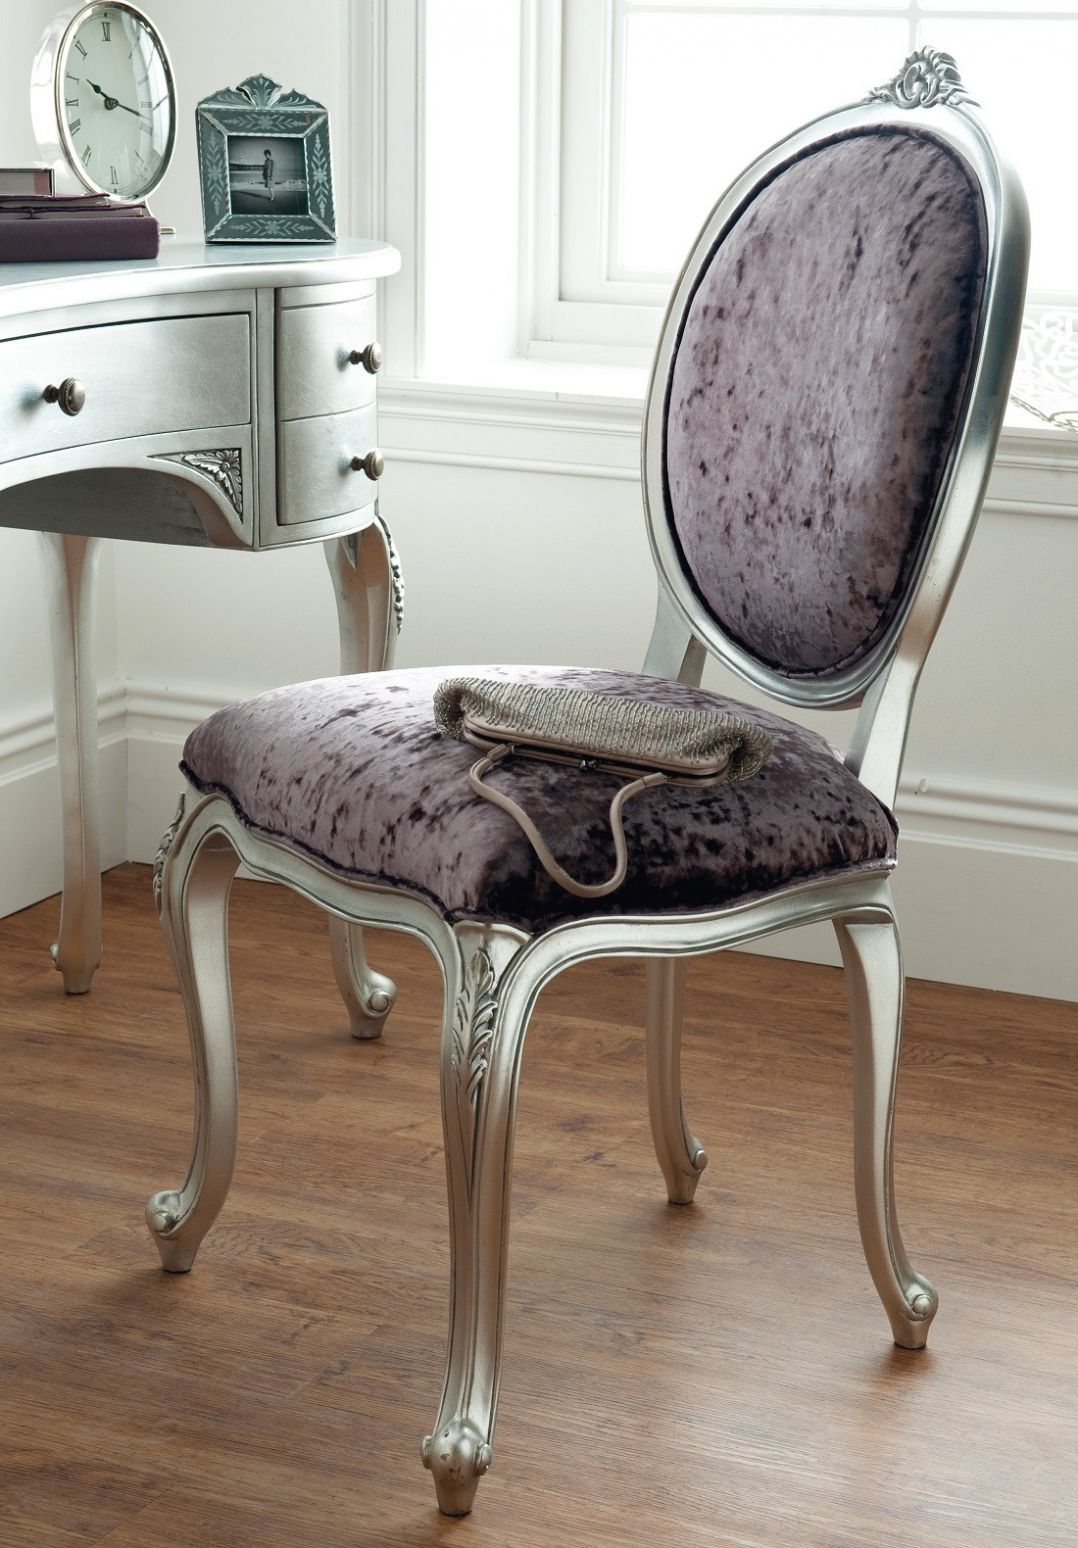 Dressing Table Chairs And Stools: BEDROOM DRESSING TABLE CHAIR